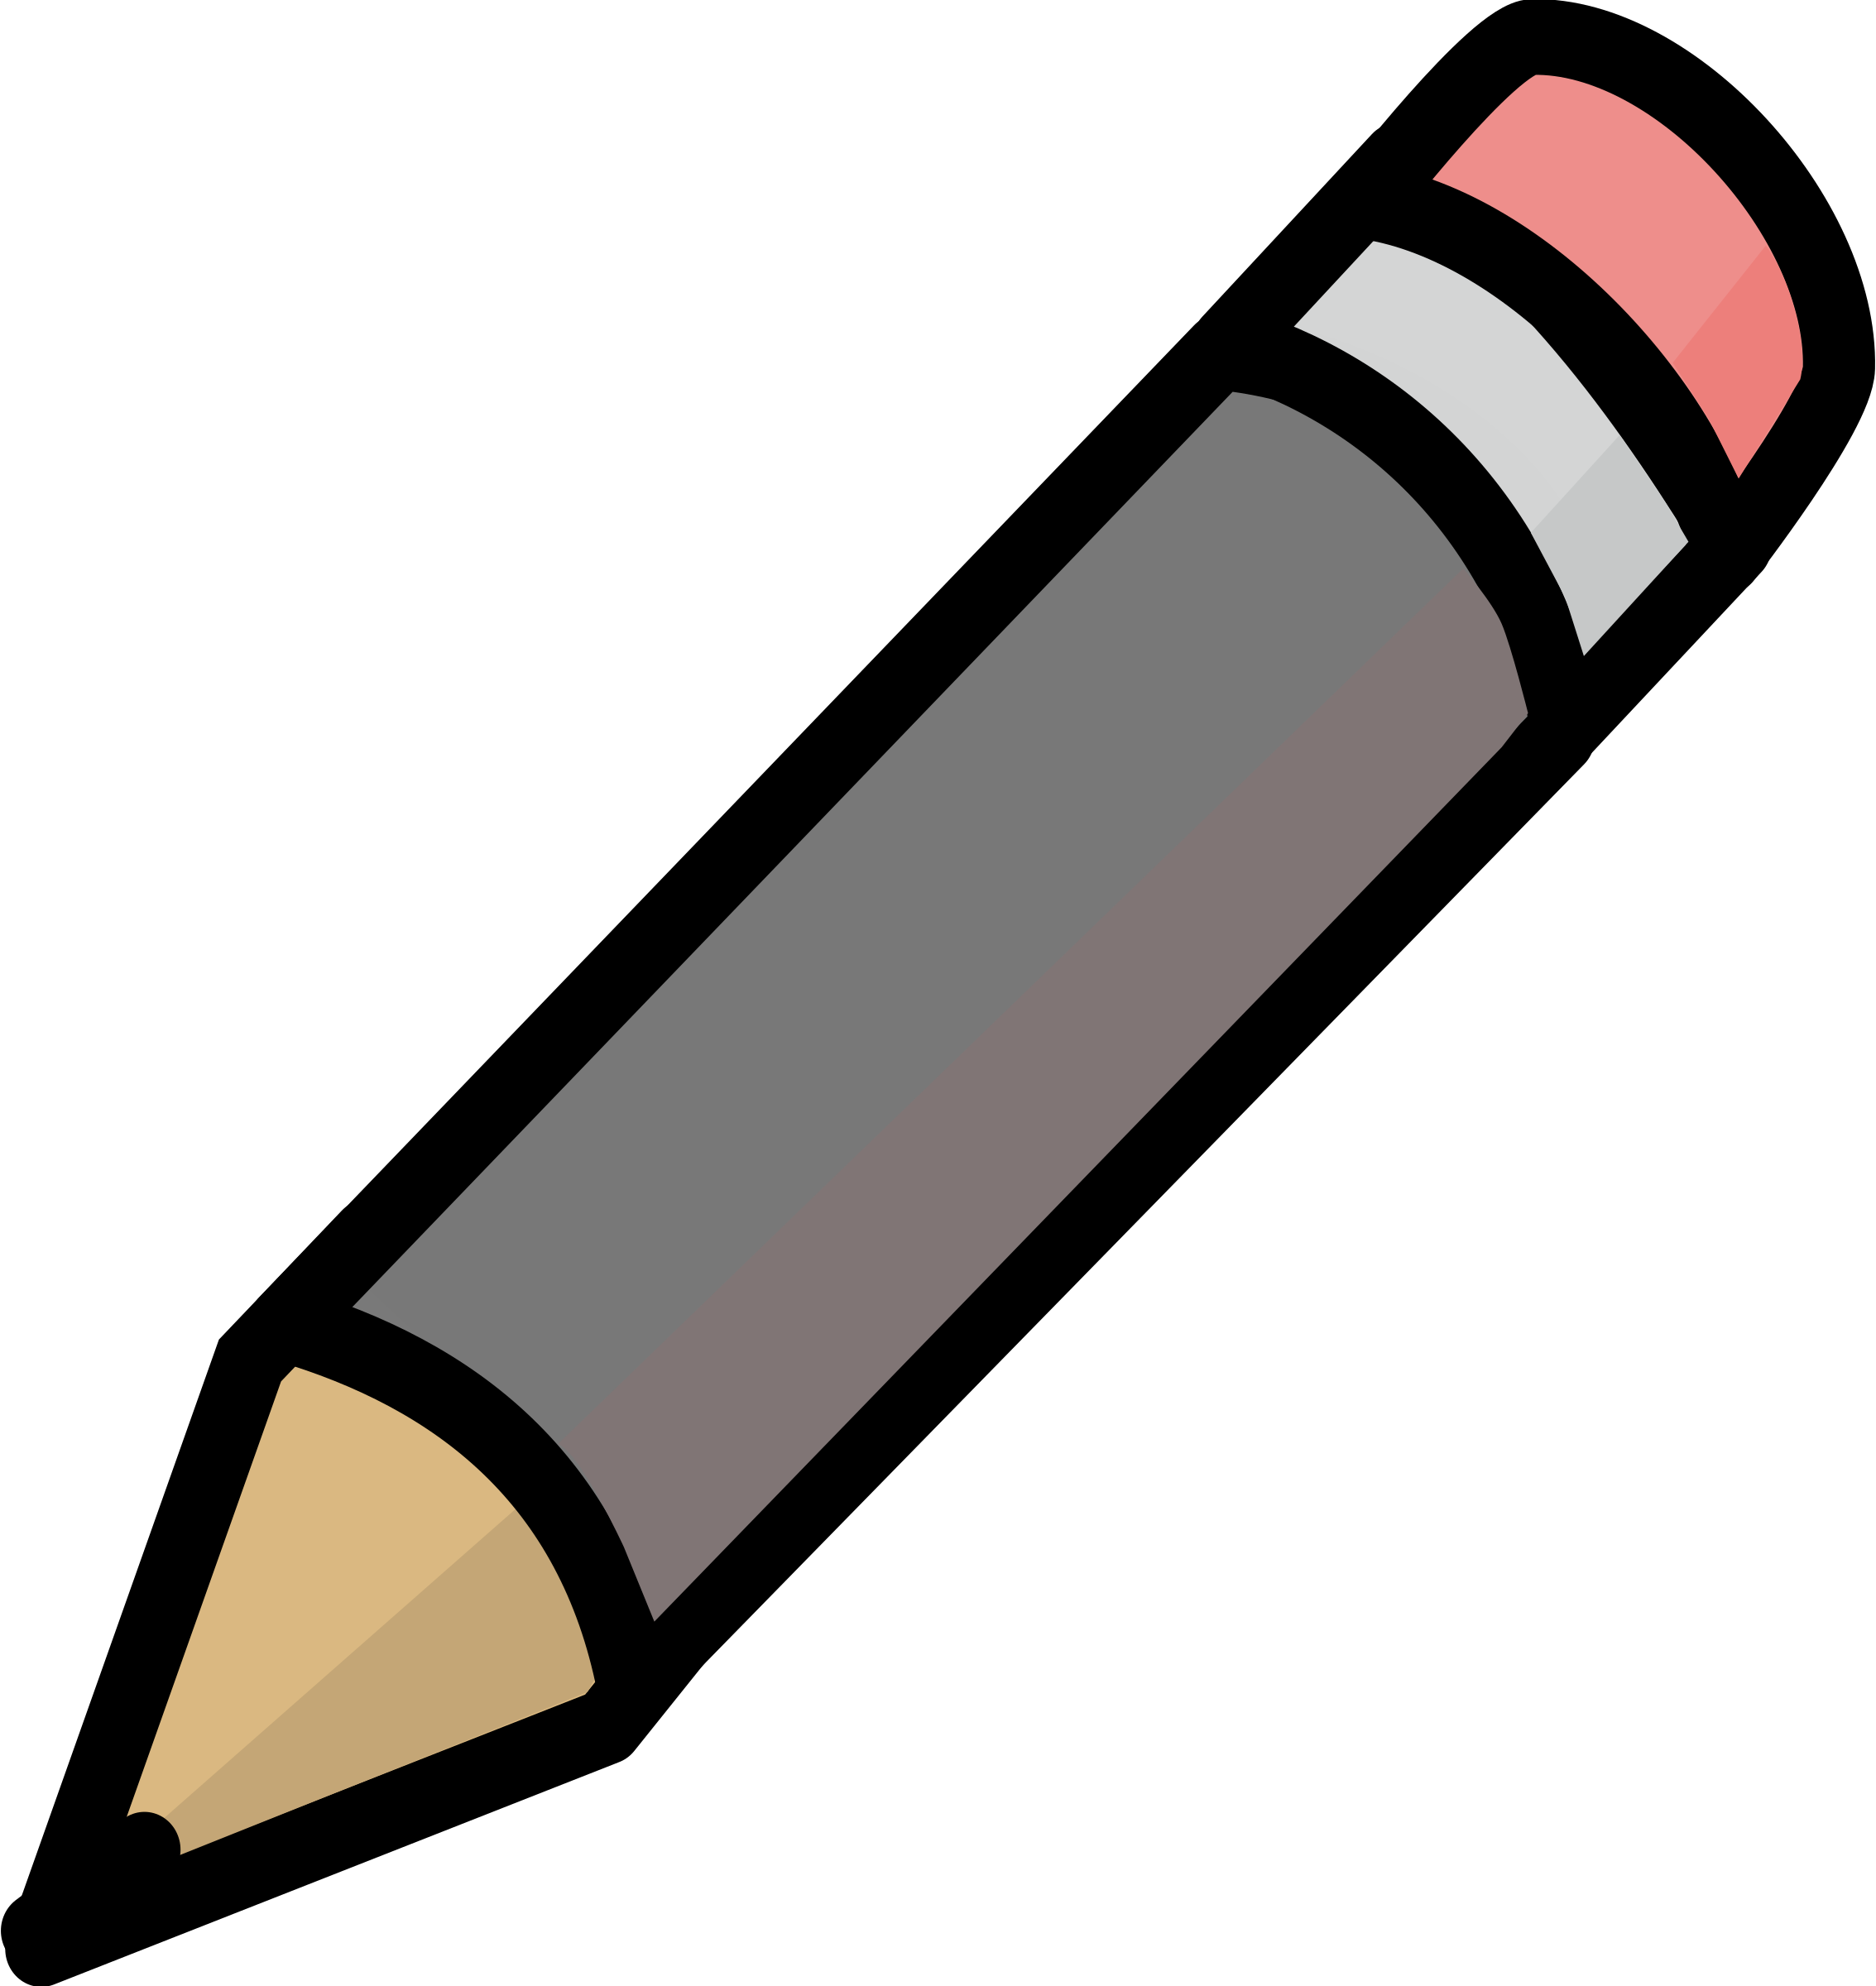 Gray Pencil Icon by j4p4n